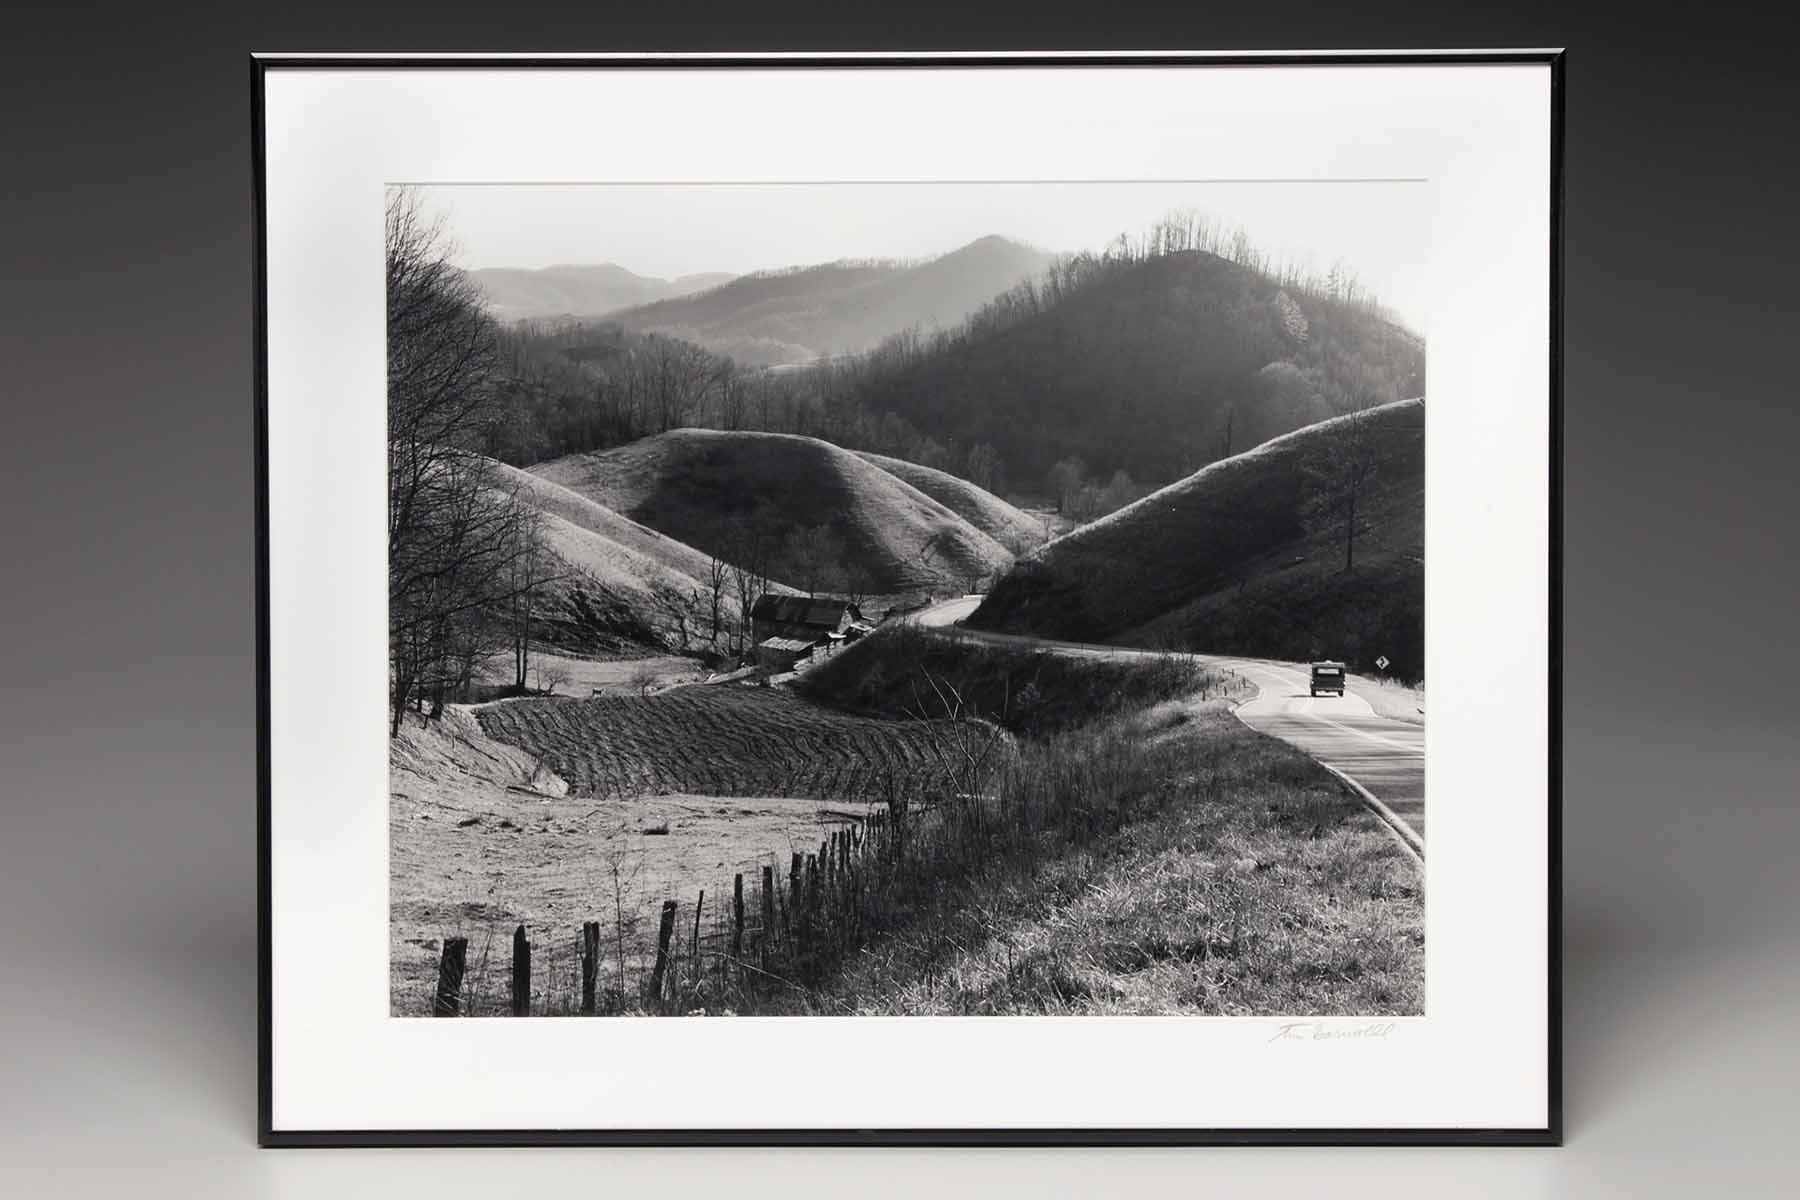 fine art black and white prints fro sale artwork for home applachian landscapes portraits tim barnwell master photographer